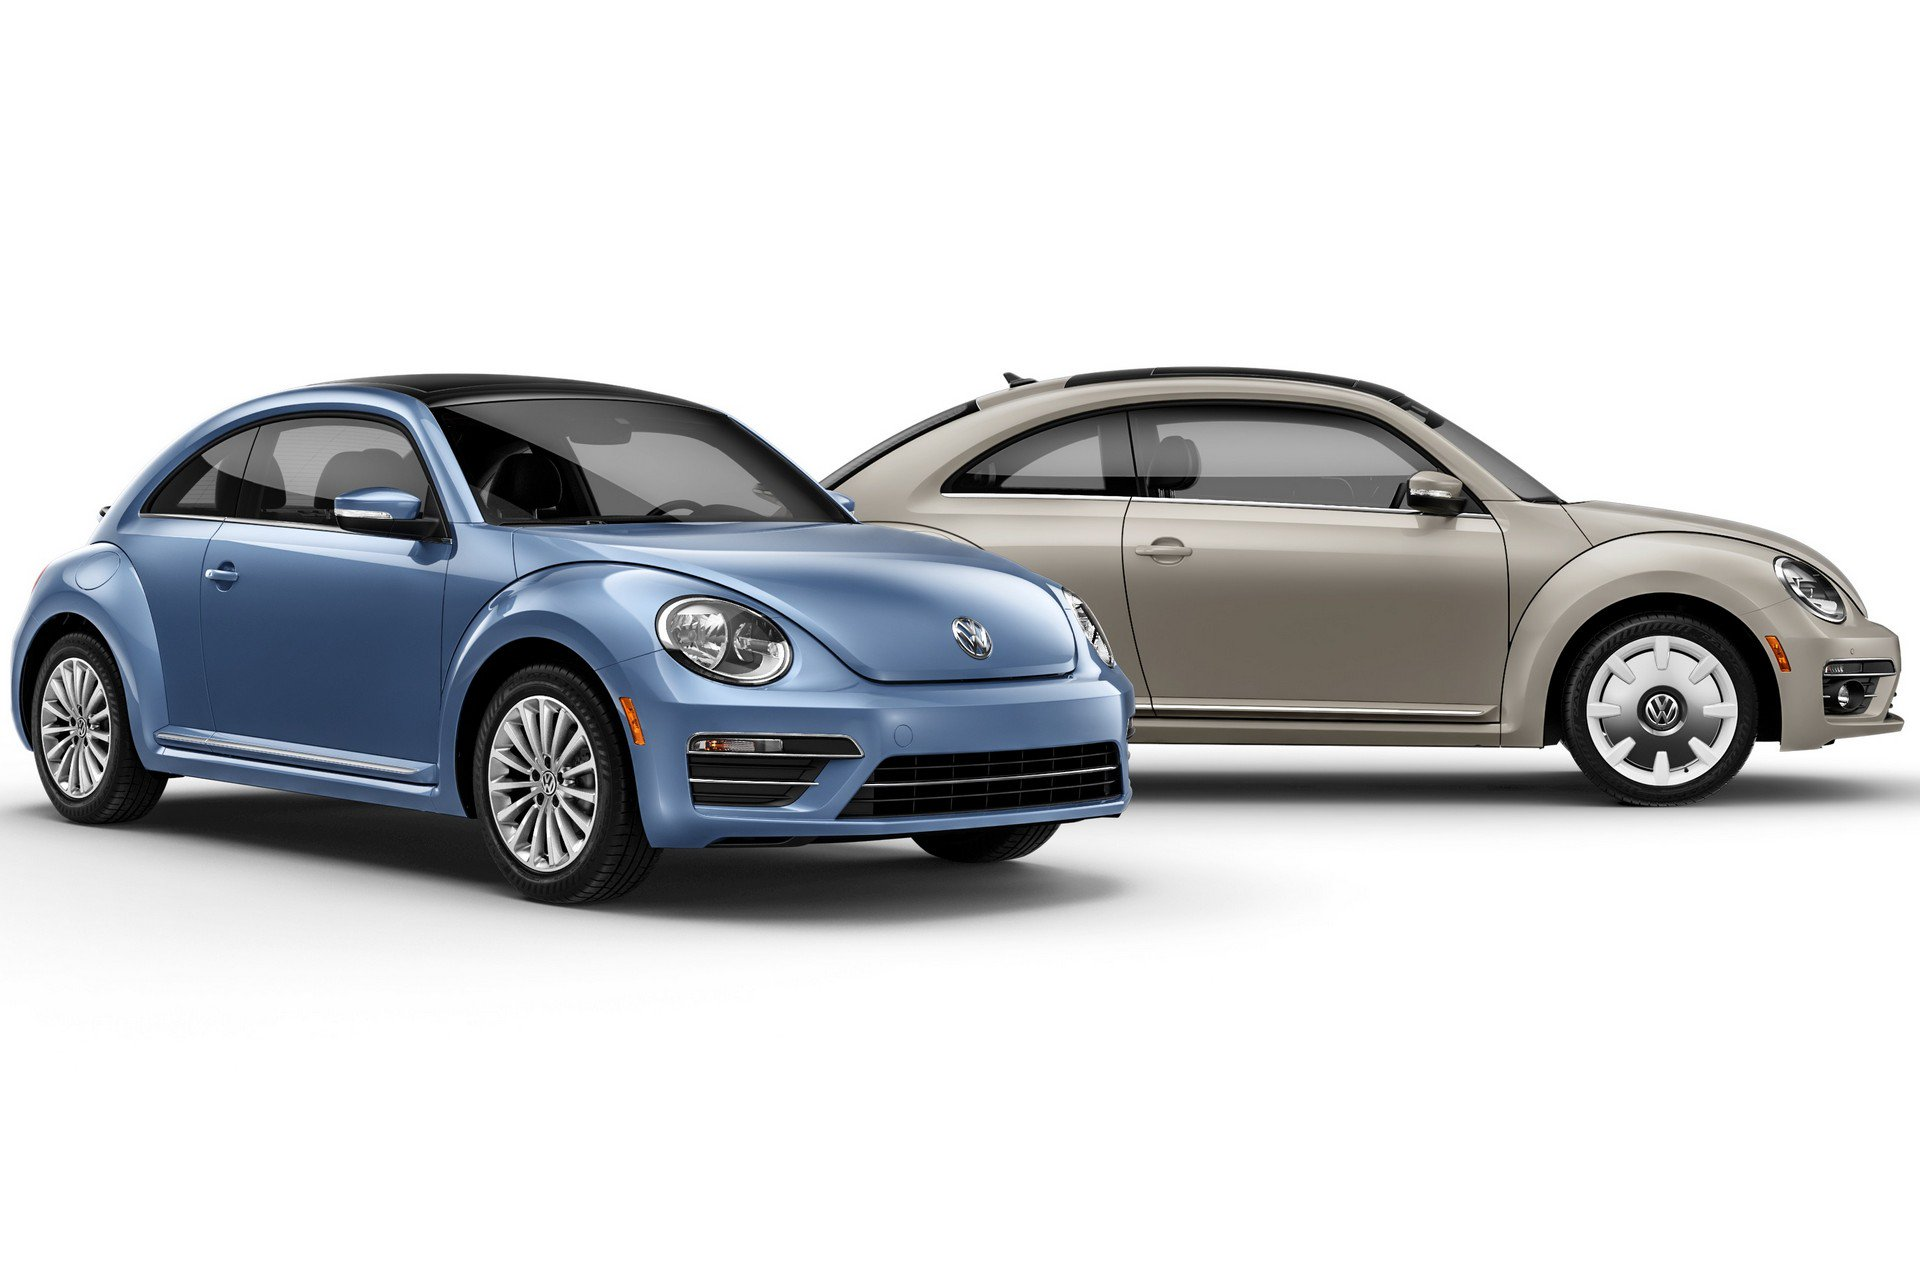 2019 Volkswagen Beetle Final Edition Officially Revealed - autoevolution